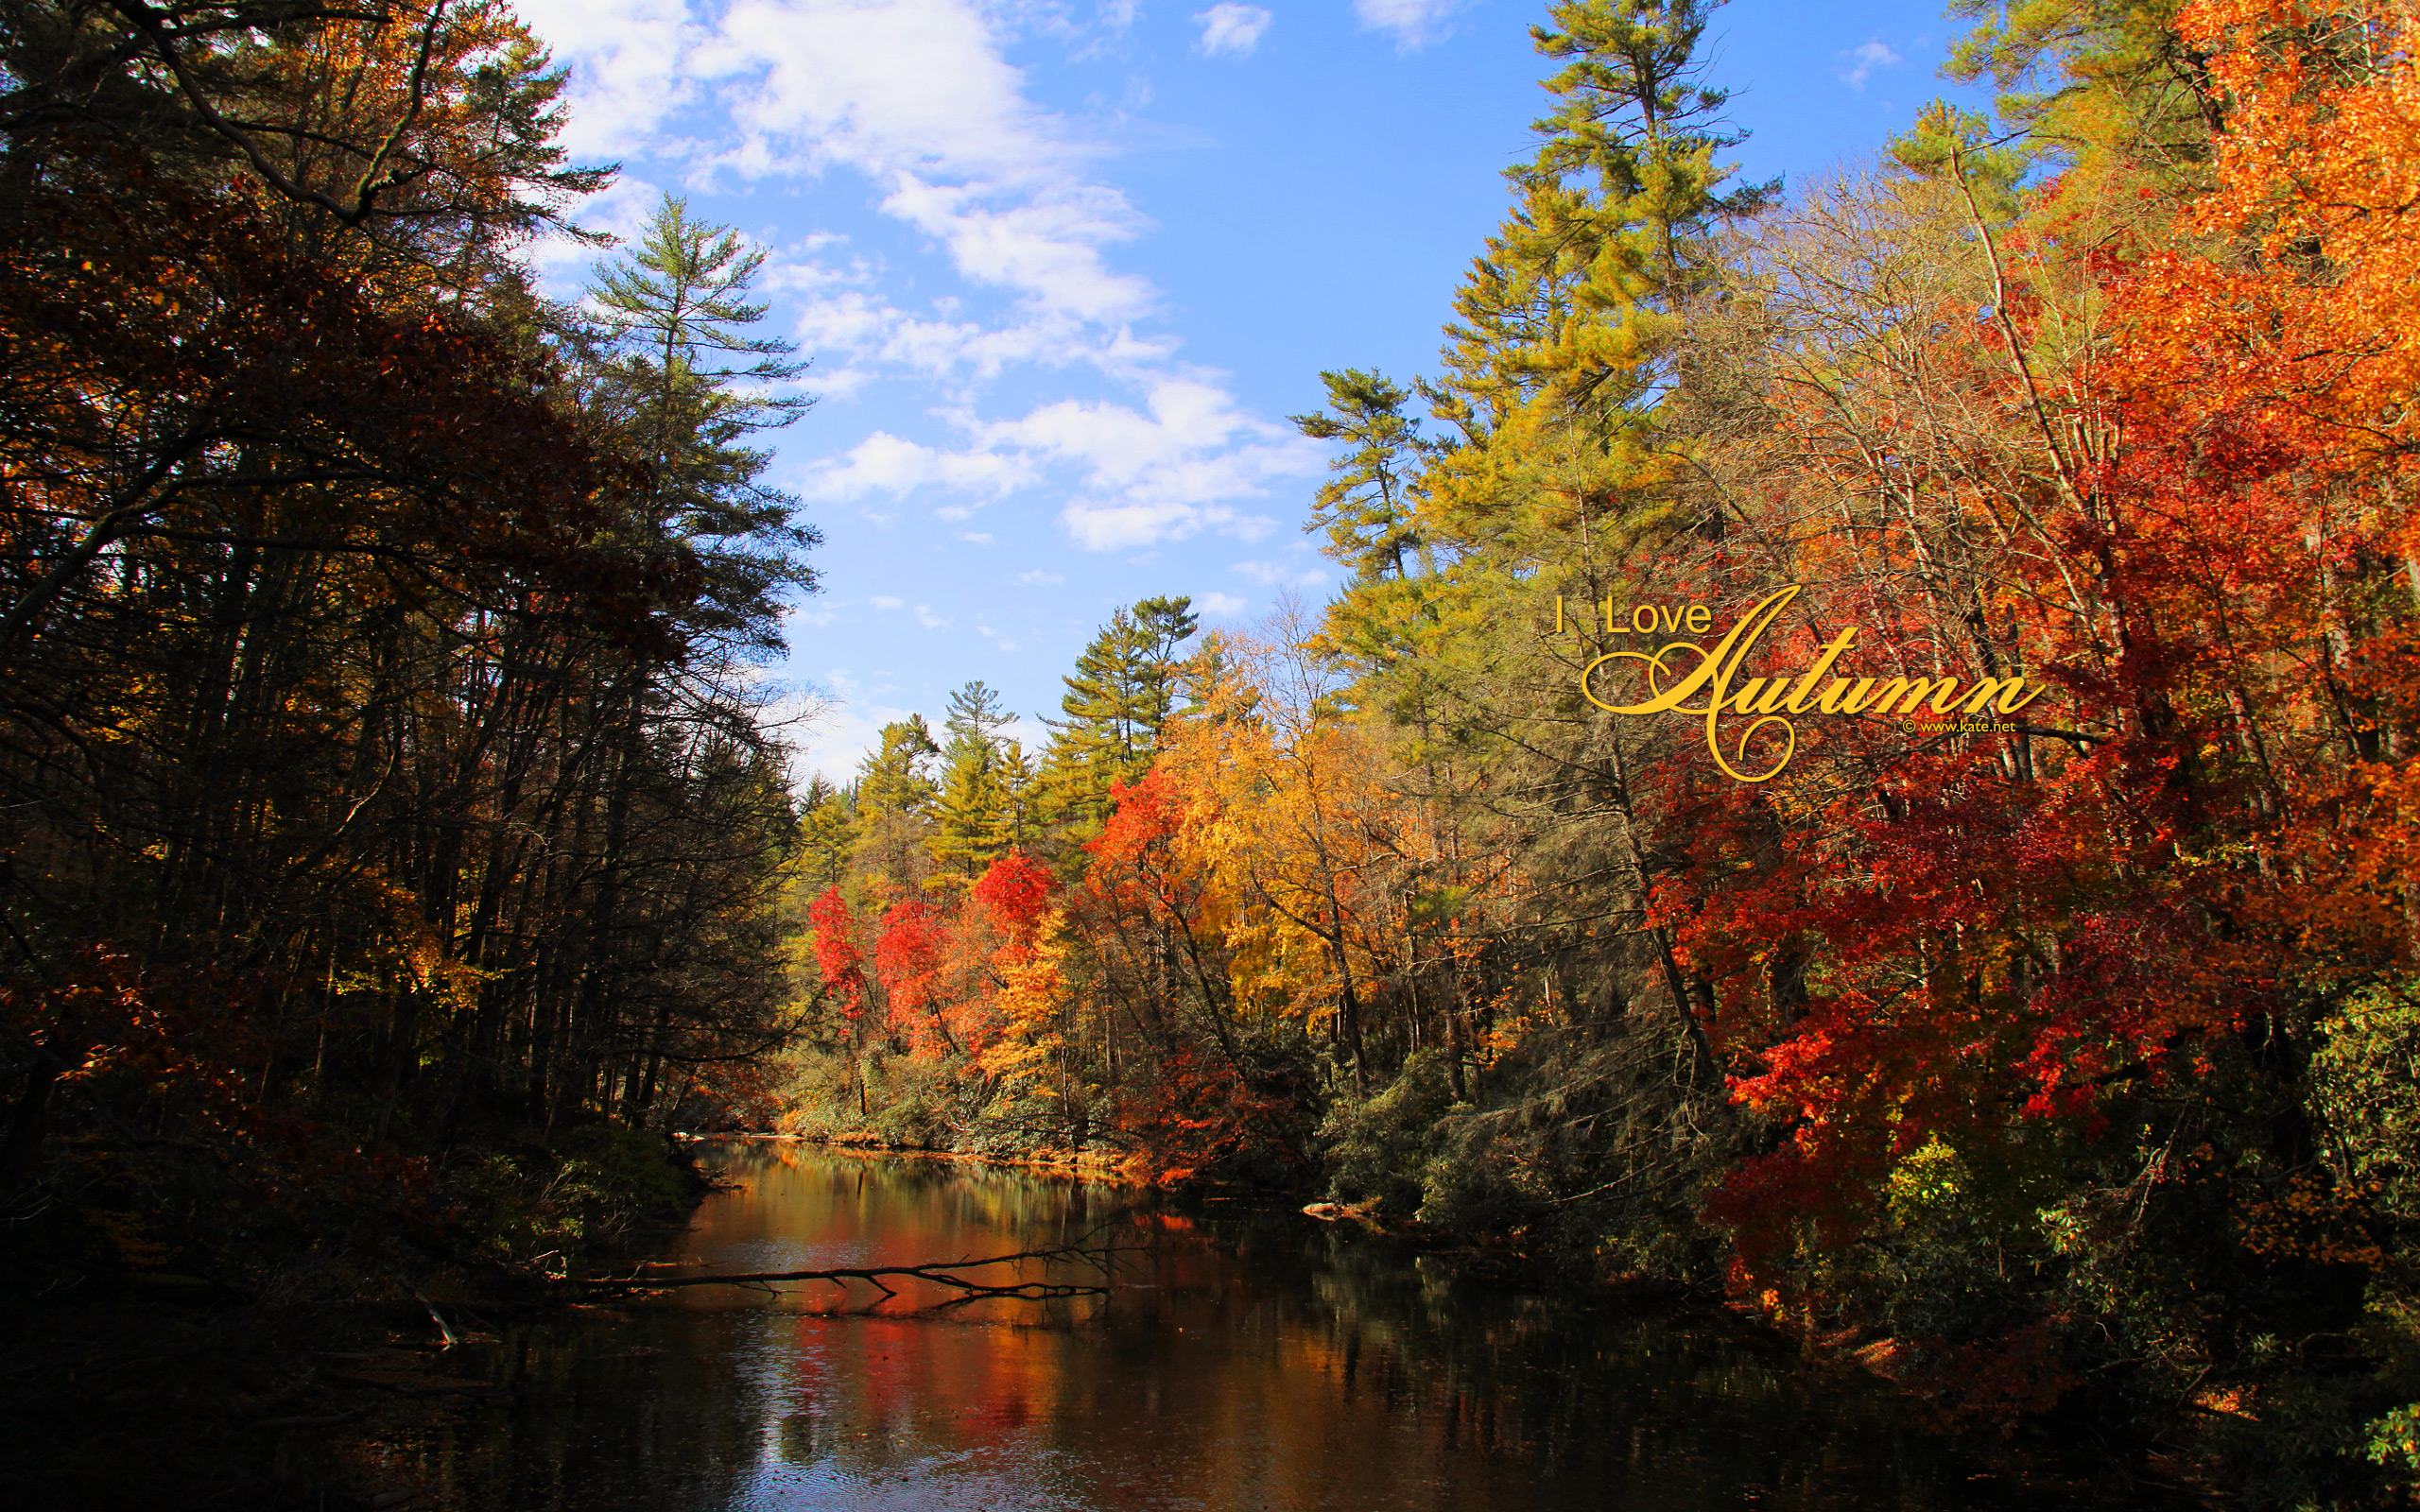 wallpaper near linville falls in nc photo wallpaper kate net created 2560x1600